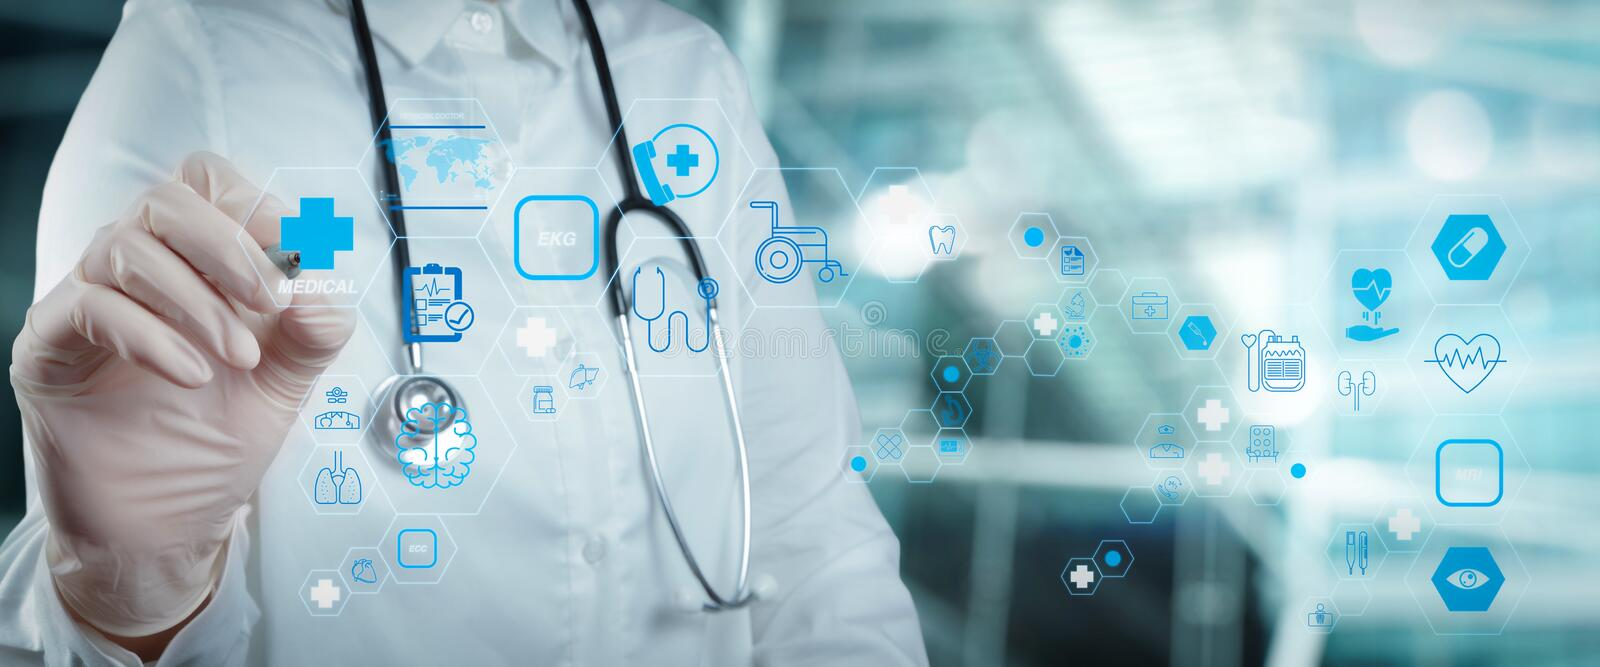 Health care and medical technology services concept royalty free stock photography